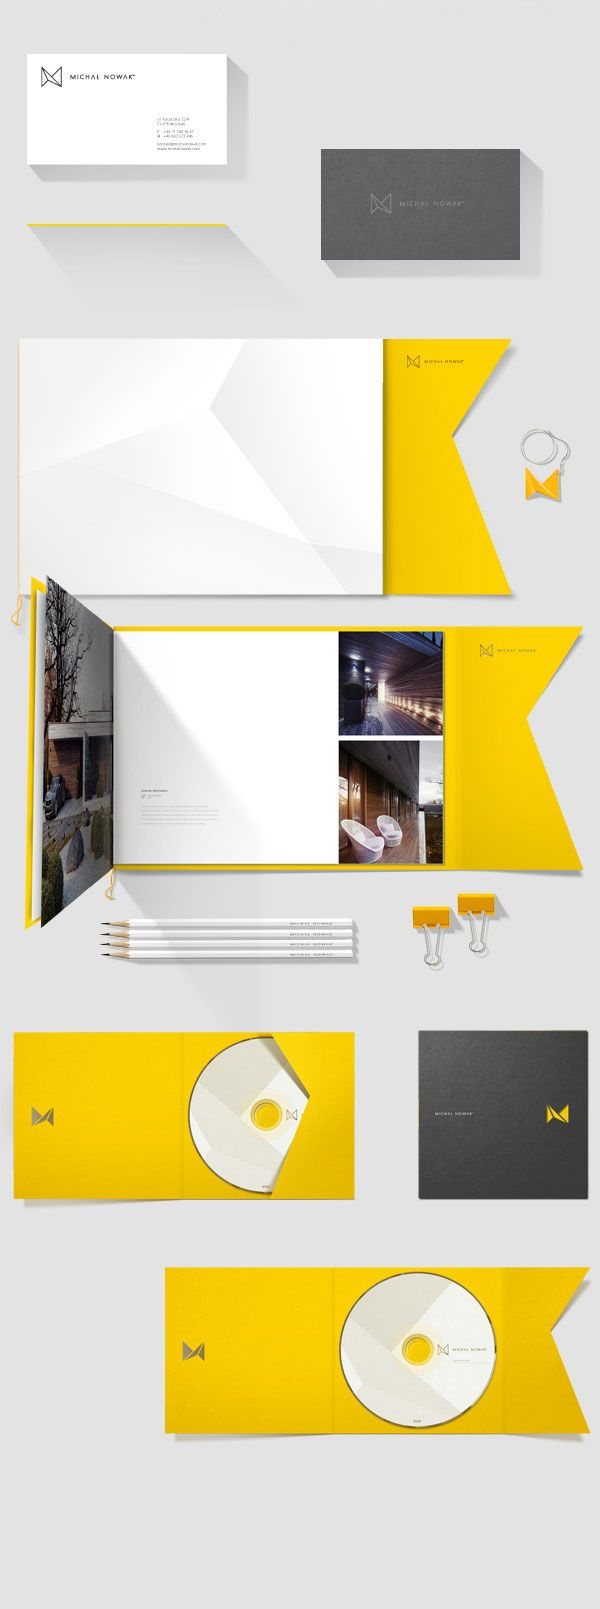 Michał Nowak - Personal Identity by Marcin Przybys and Ania Szerszen - Selected items of the stationery set and printed collateral. The complete design is based on triangular shapes and a color combination of yellow, grey, and white.